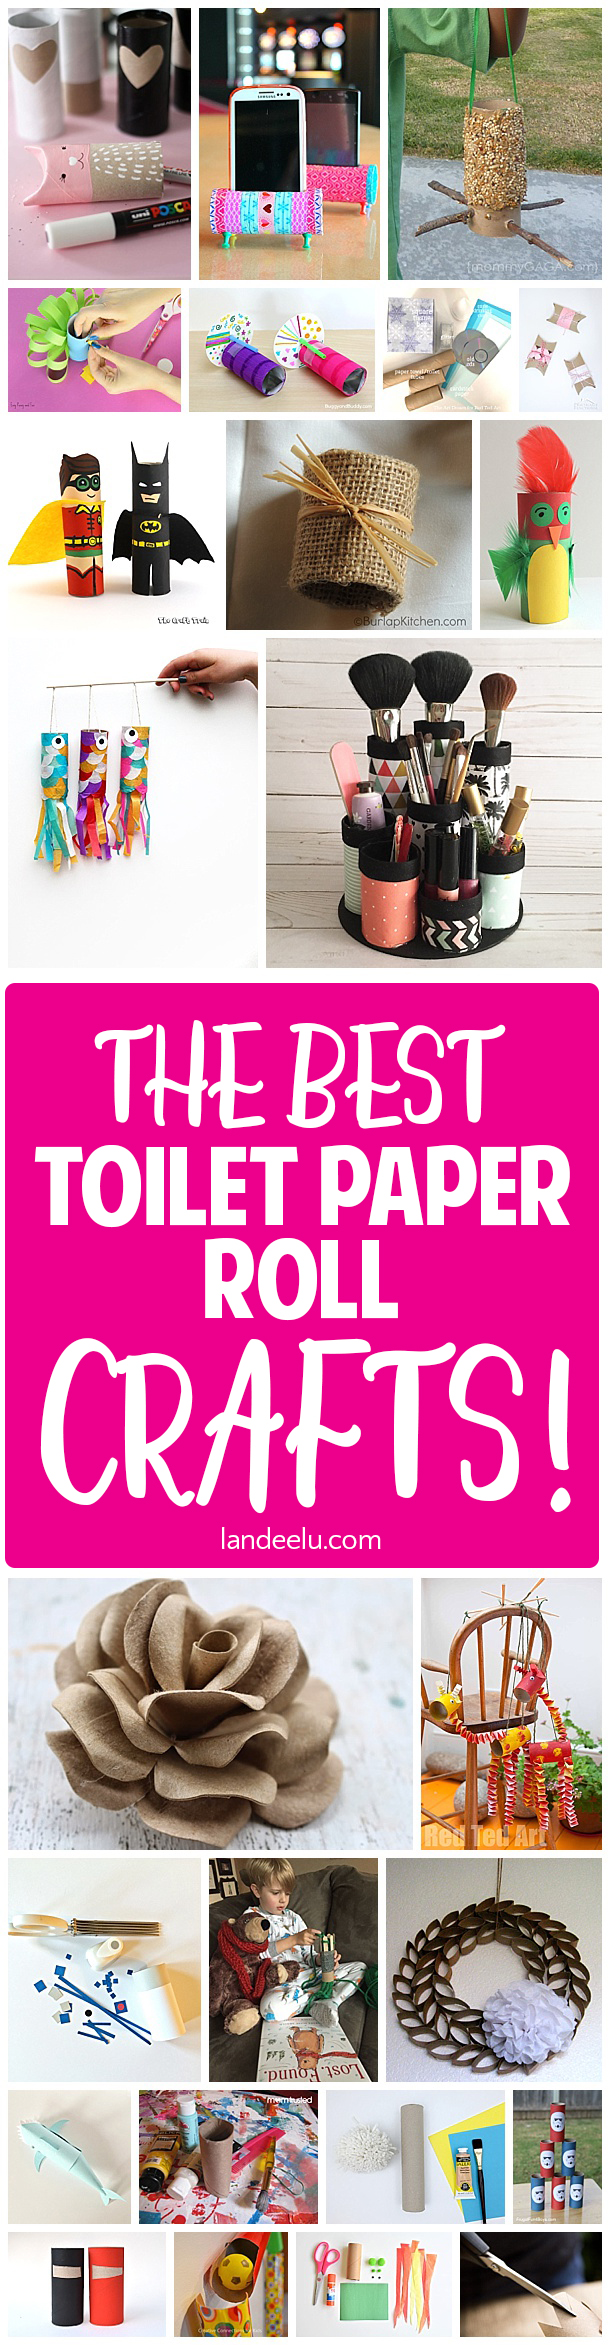 Empty toilet paper rolls are so useful and fun in crafting! Lots of awesome toilet paper roll crafts in this post! #easycrafts #kidscrafts #toiletpaperrolls #upcycle